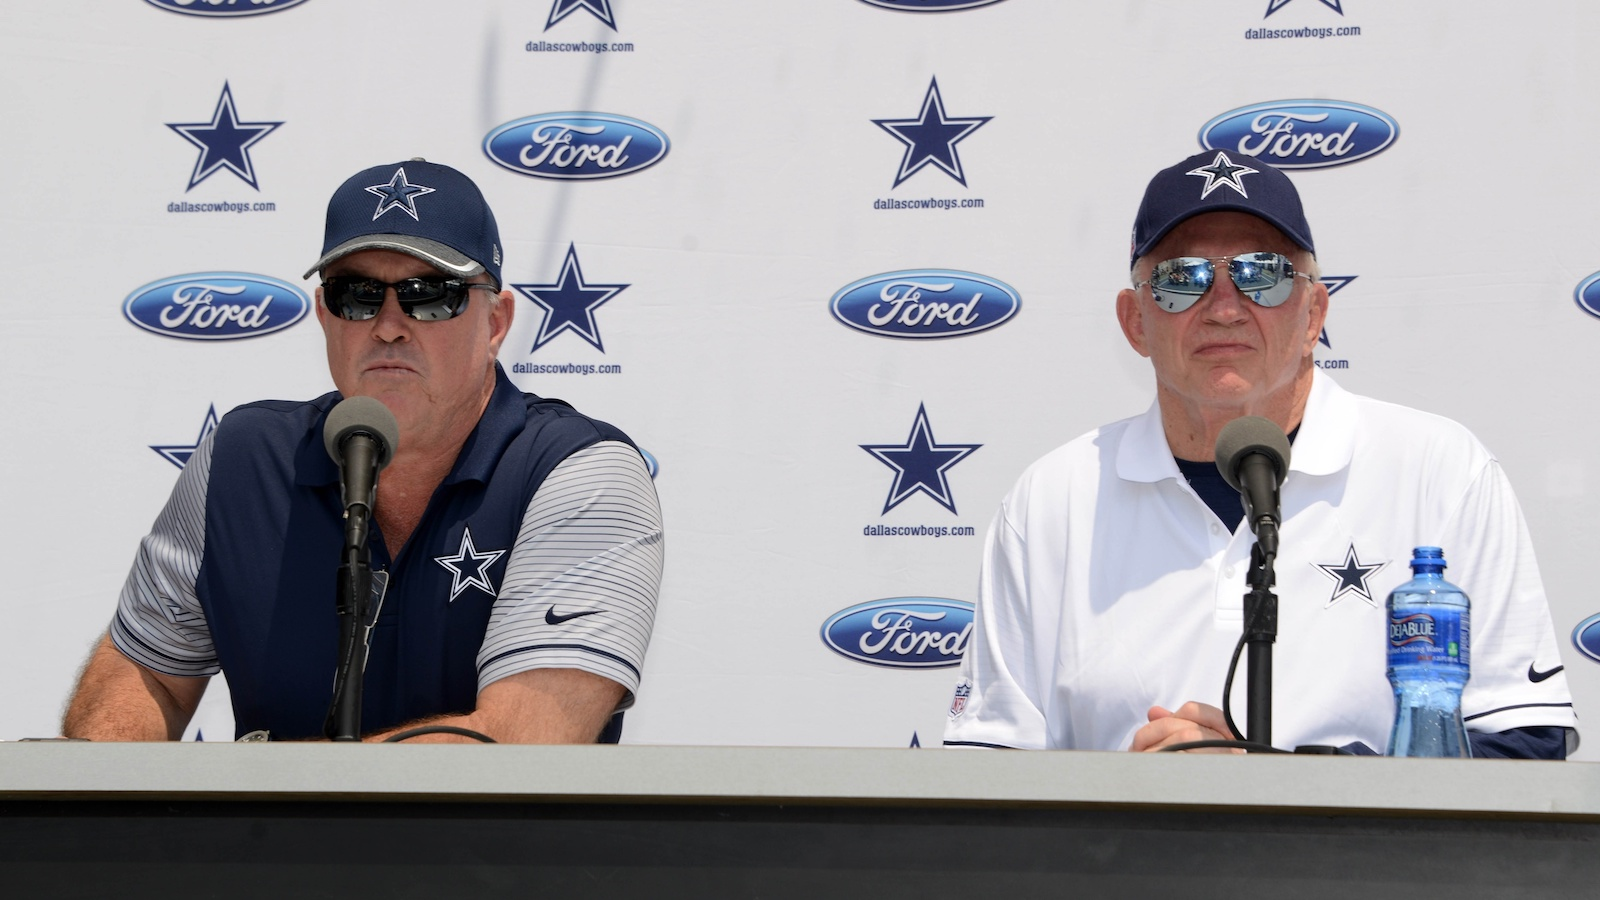 022117-NFL-Cowboys-Jerry-Jones-Stephen-Jones